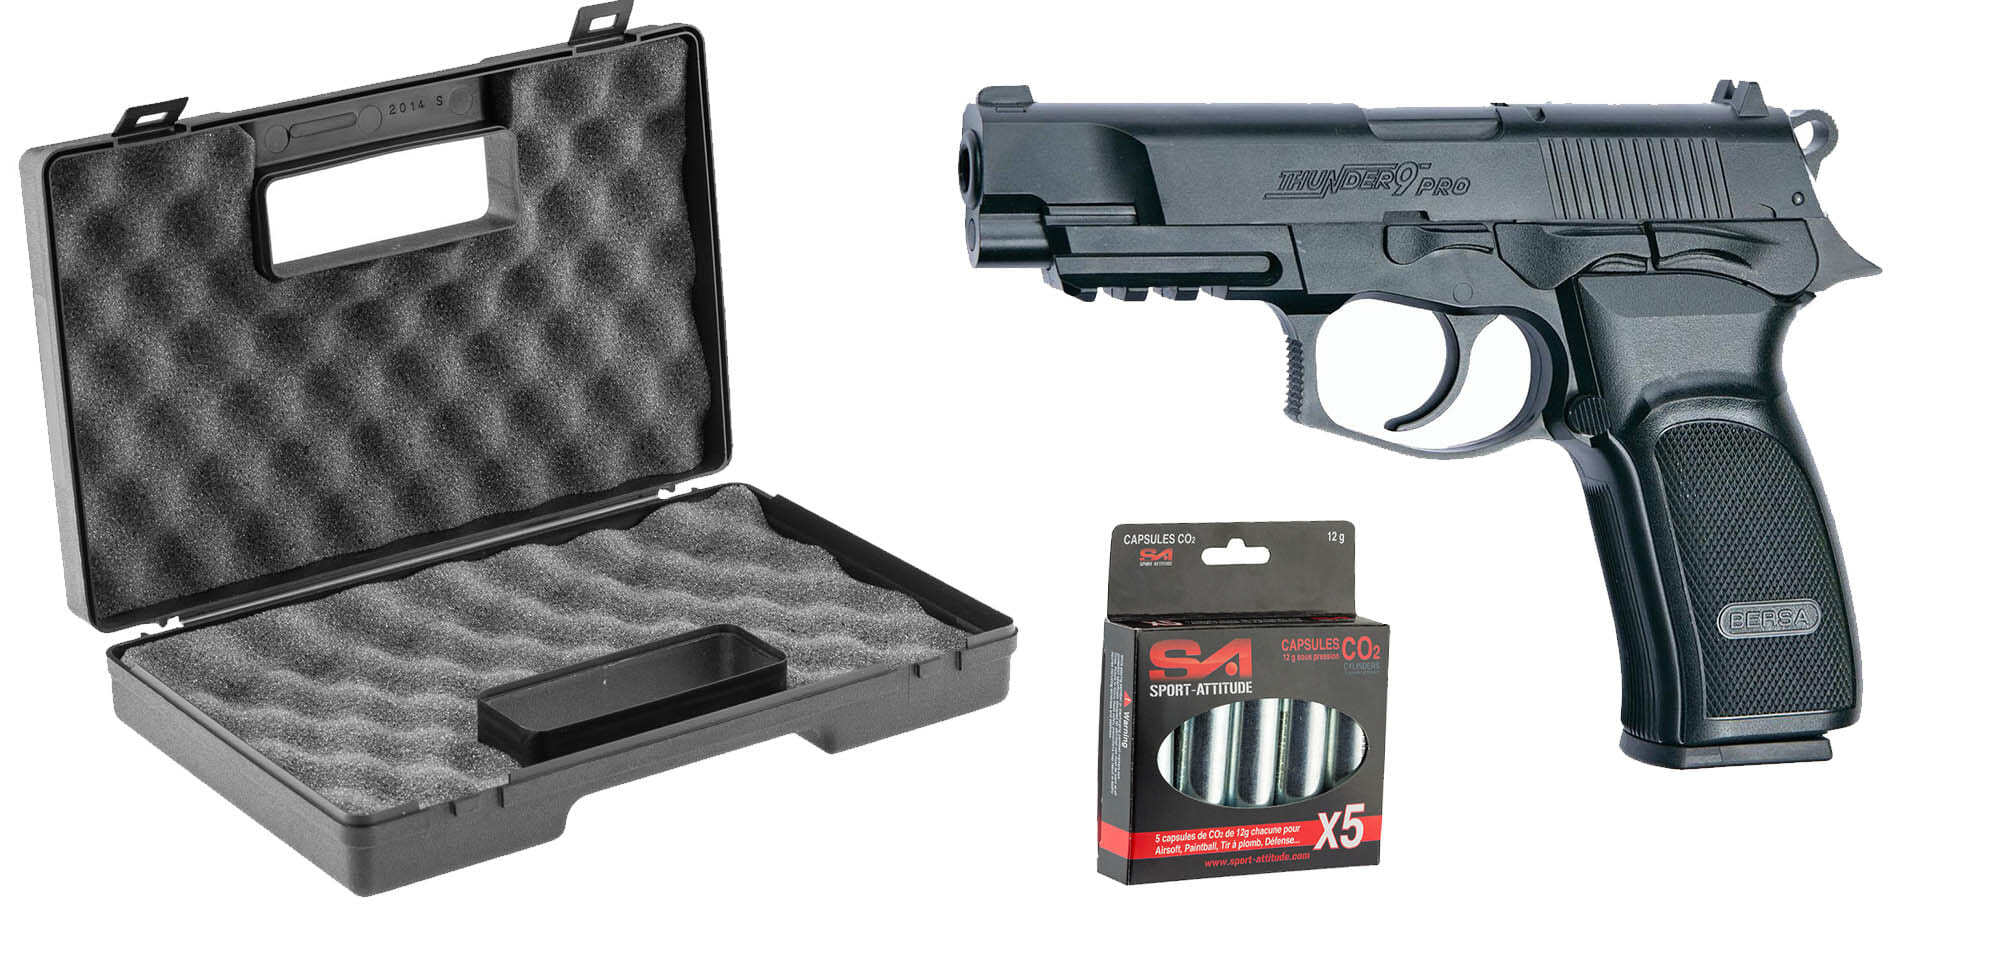 PCKPG1950-Pack Bersa- CO2 + mallette ABS + 5 Co2 - PCKPG1950